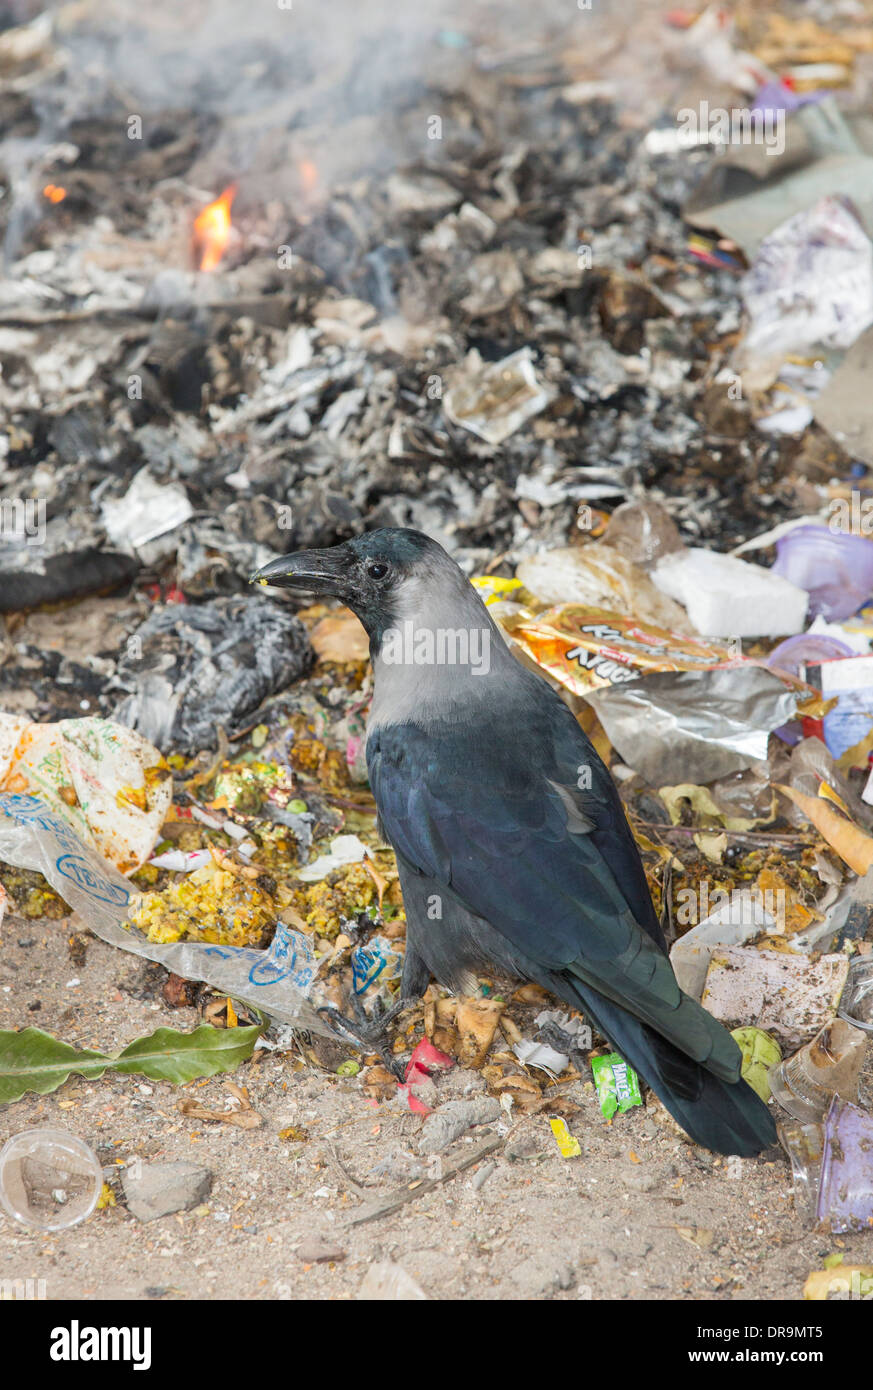 A House Crow, (Corvus splendens) feeding on a rubbish pile in Ahmedabad; India; - Stock Image